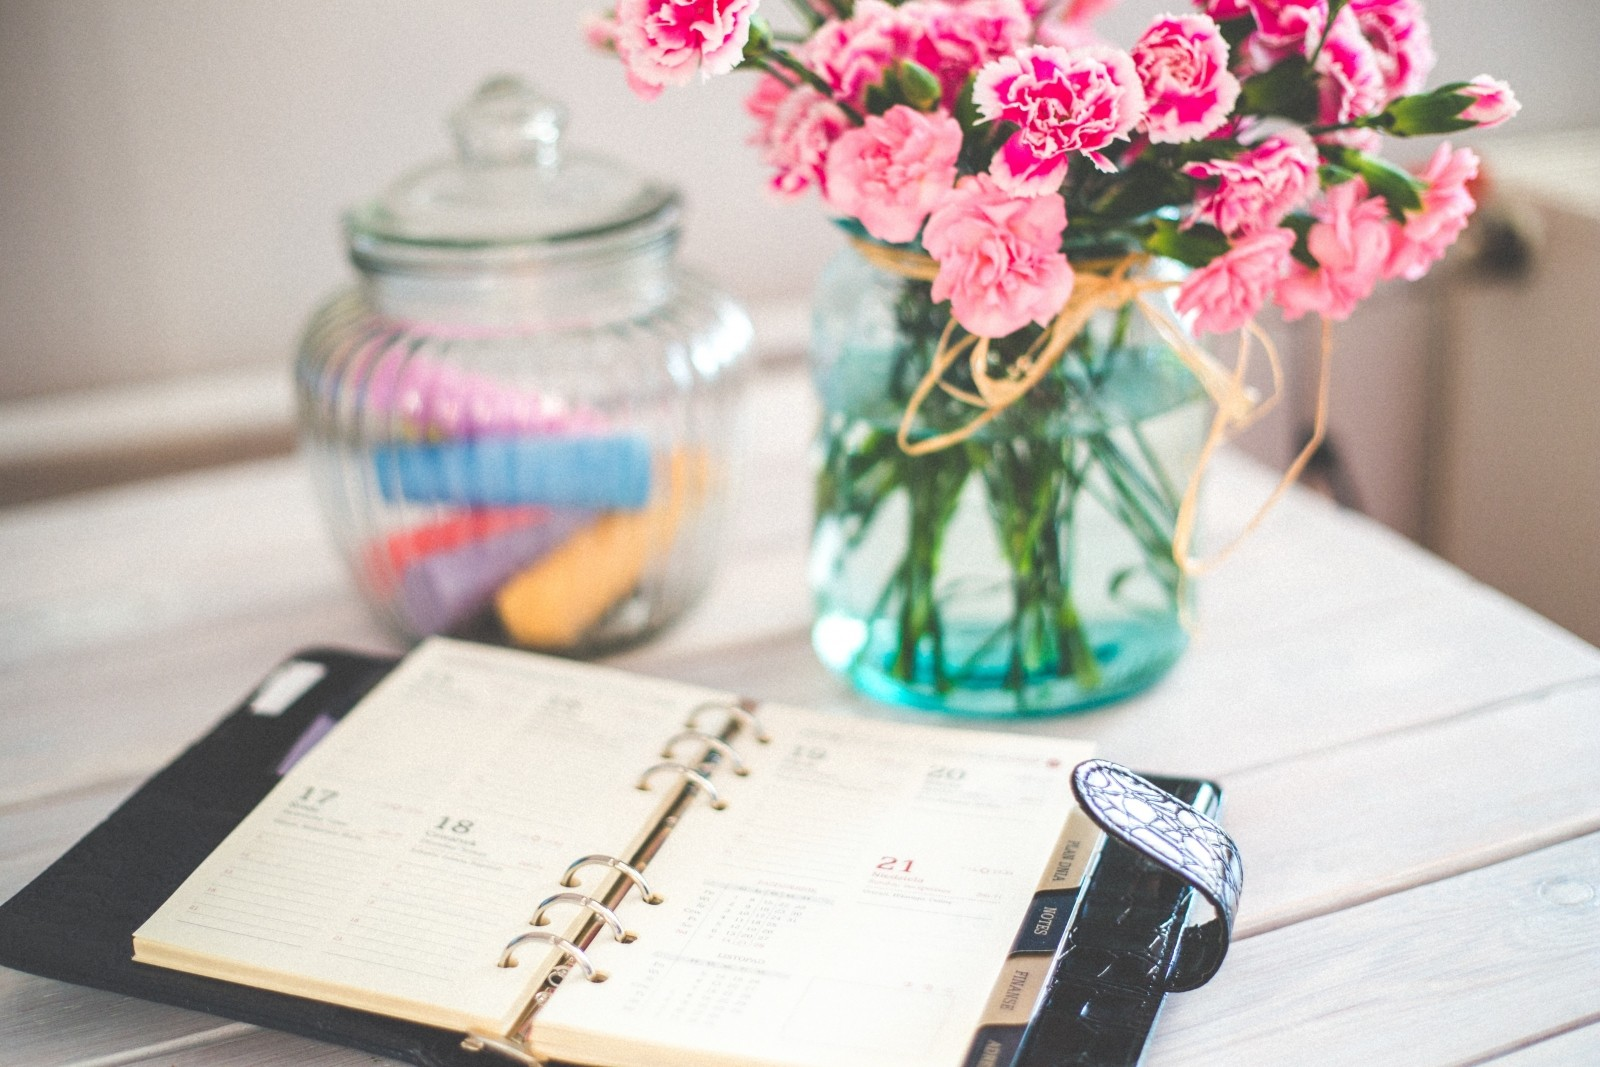 personal-organizer-and-bunch-of-pink-flowers-in-vase-on-desk[1]